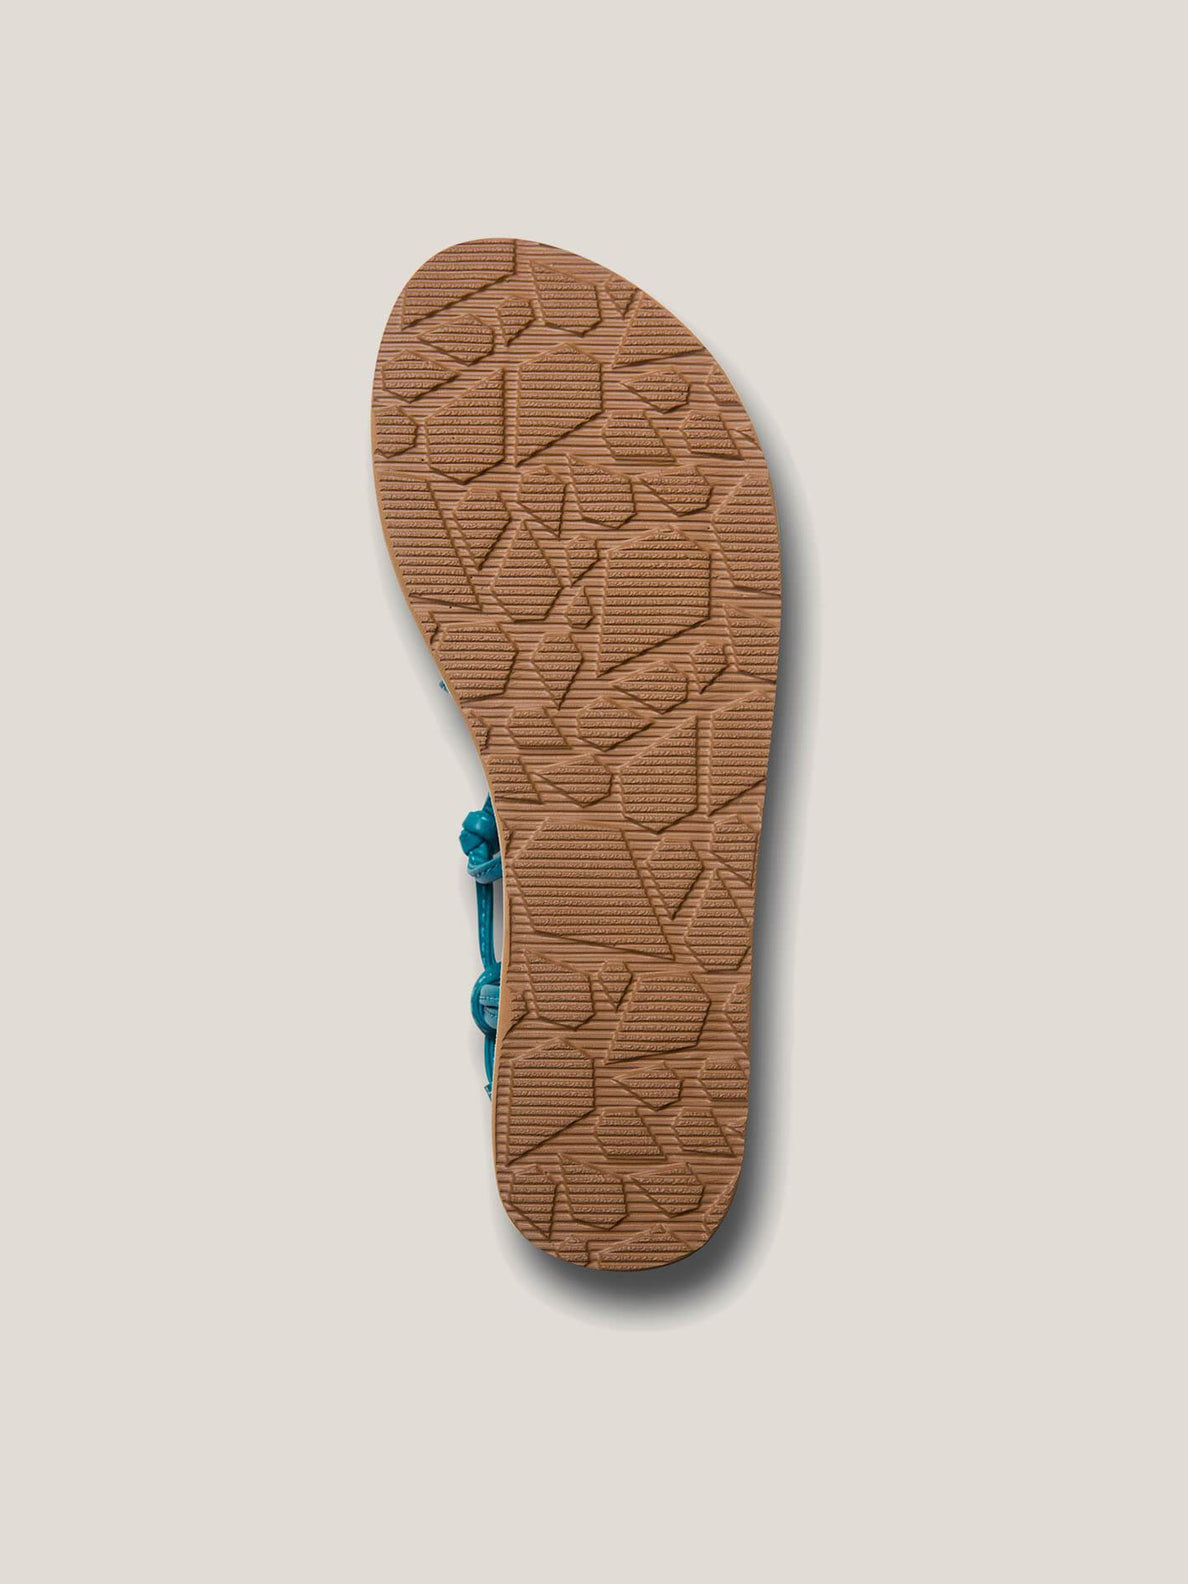 Whateversclever Sandals In Teal, Second Alternate View